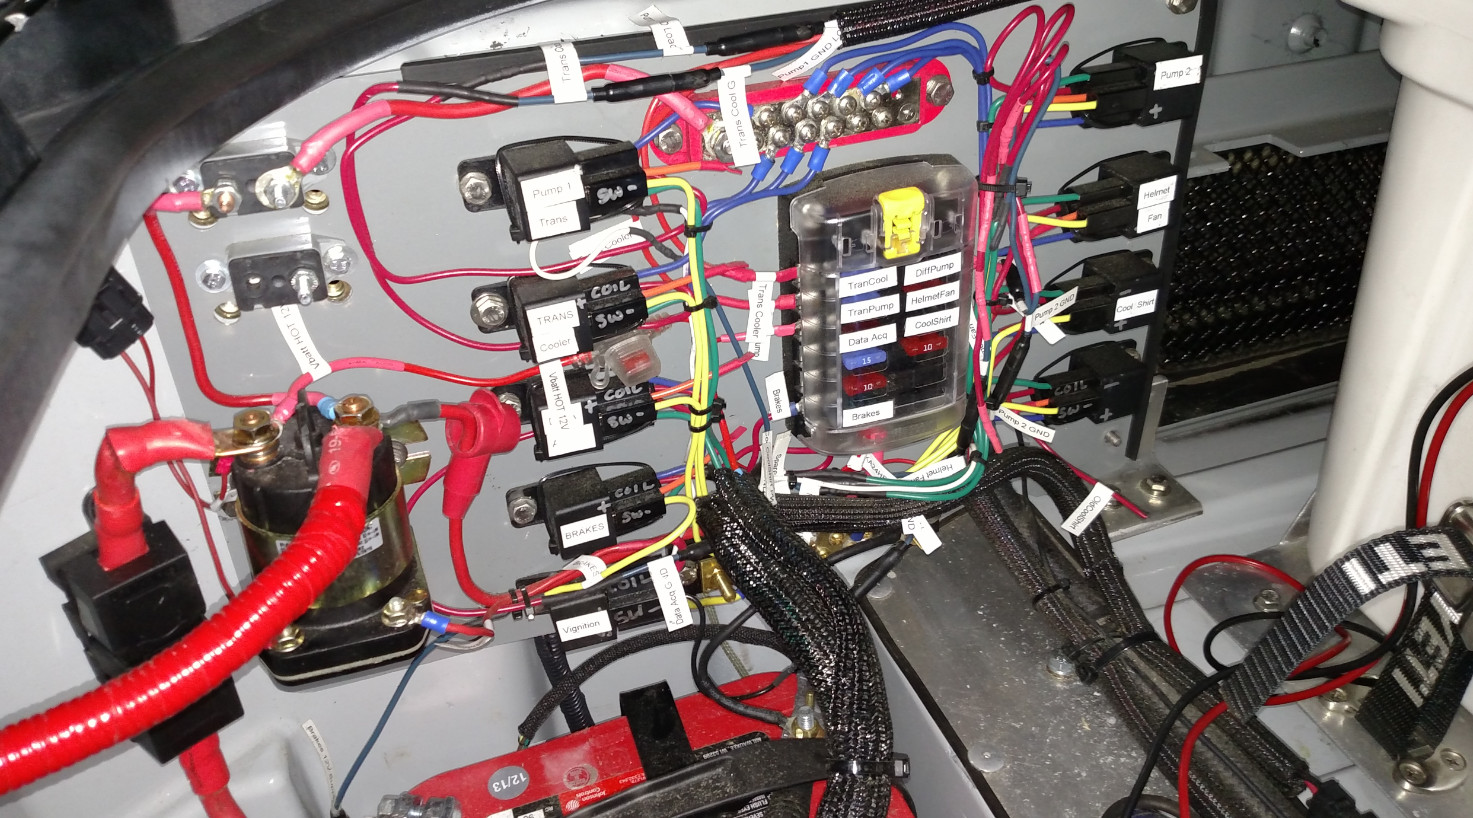 race car wiring - 2009 camry fuse box location for wiring diagram schematics  wiring diagram schematics